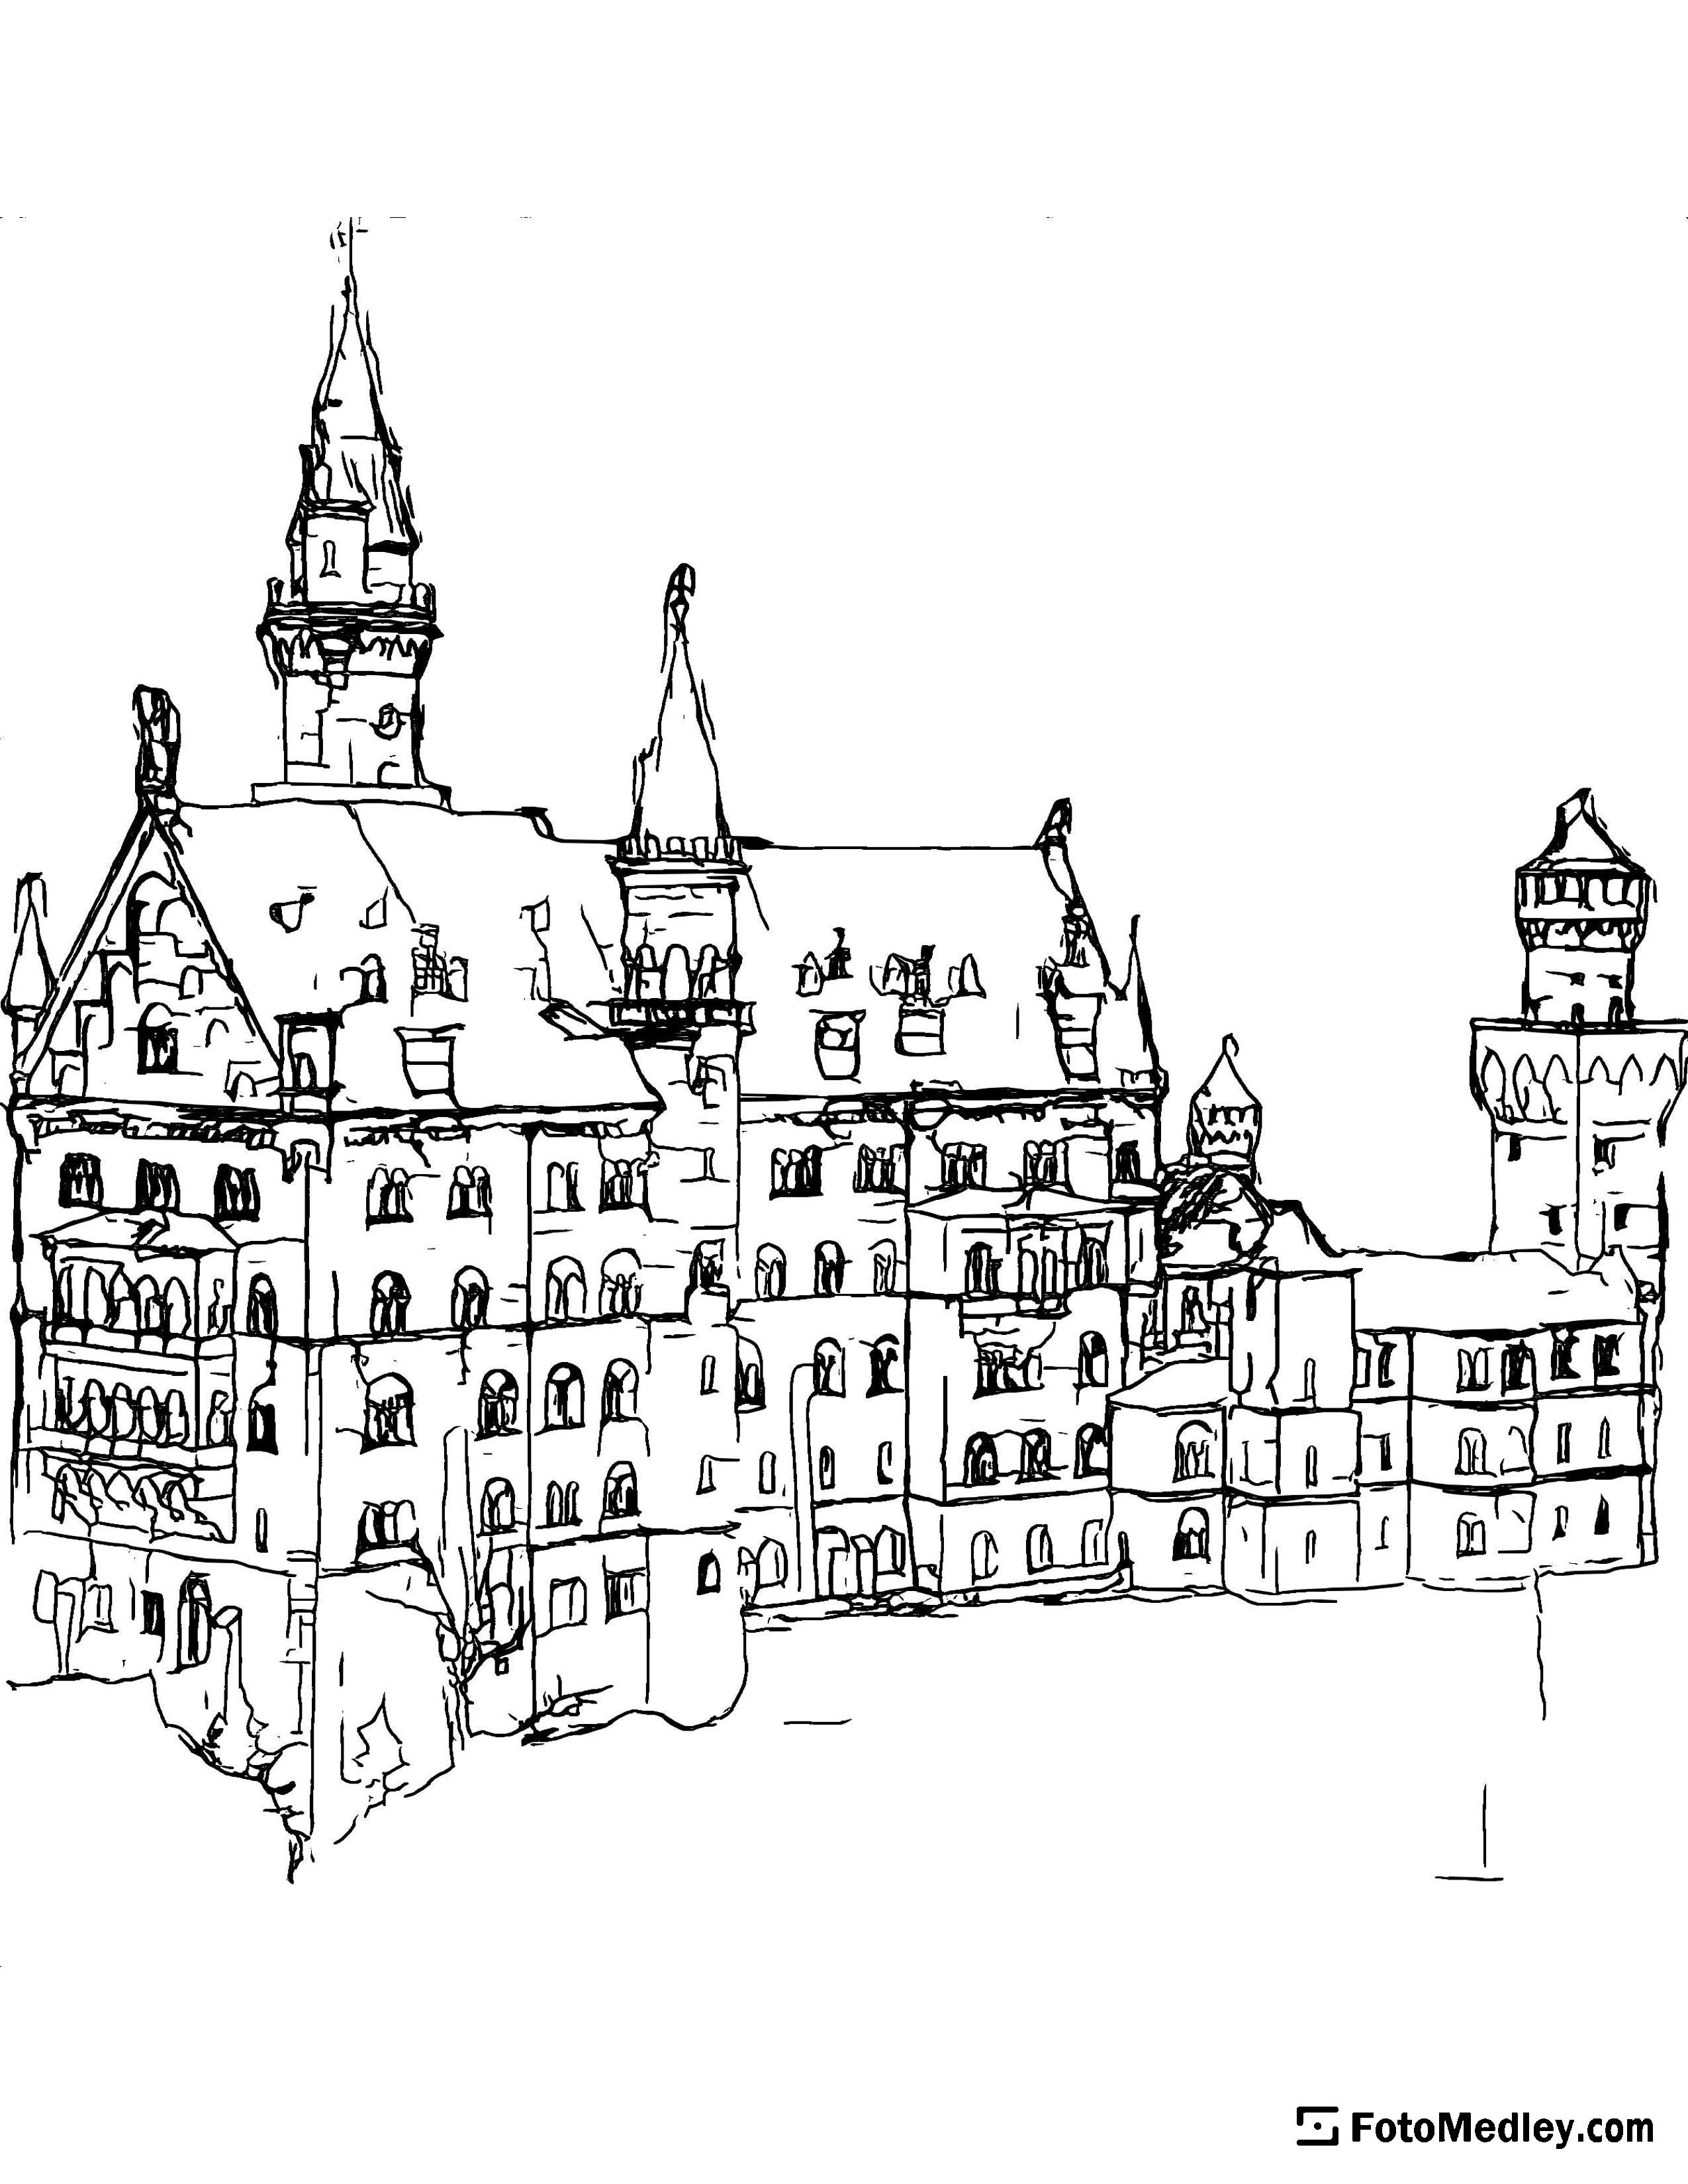 A coloring page of Neuschwanstein Castle in Germany.